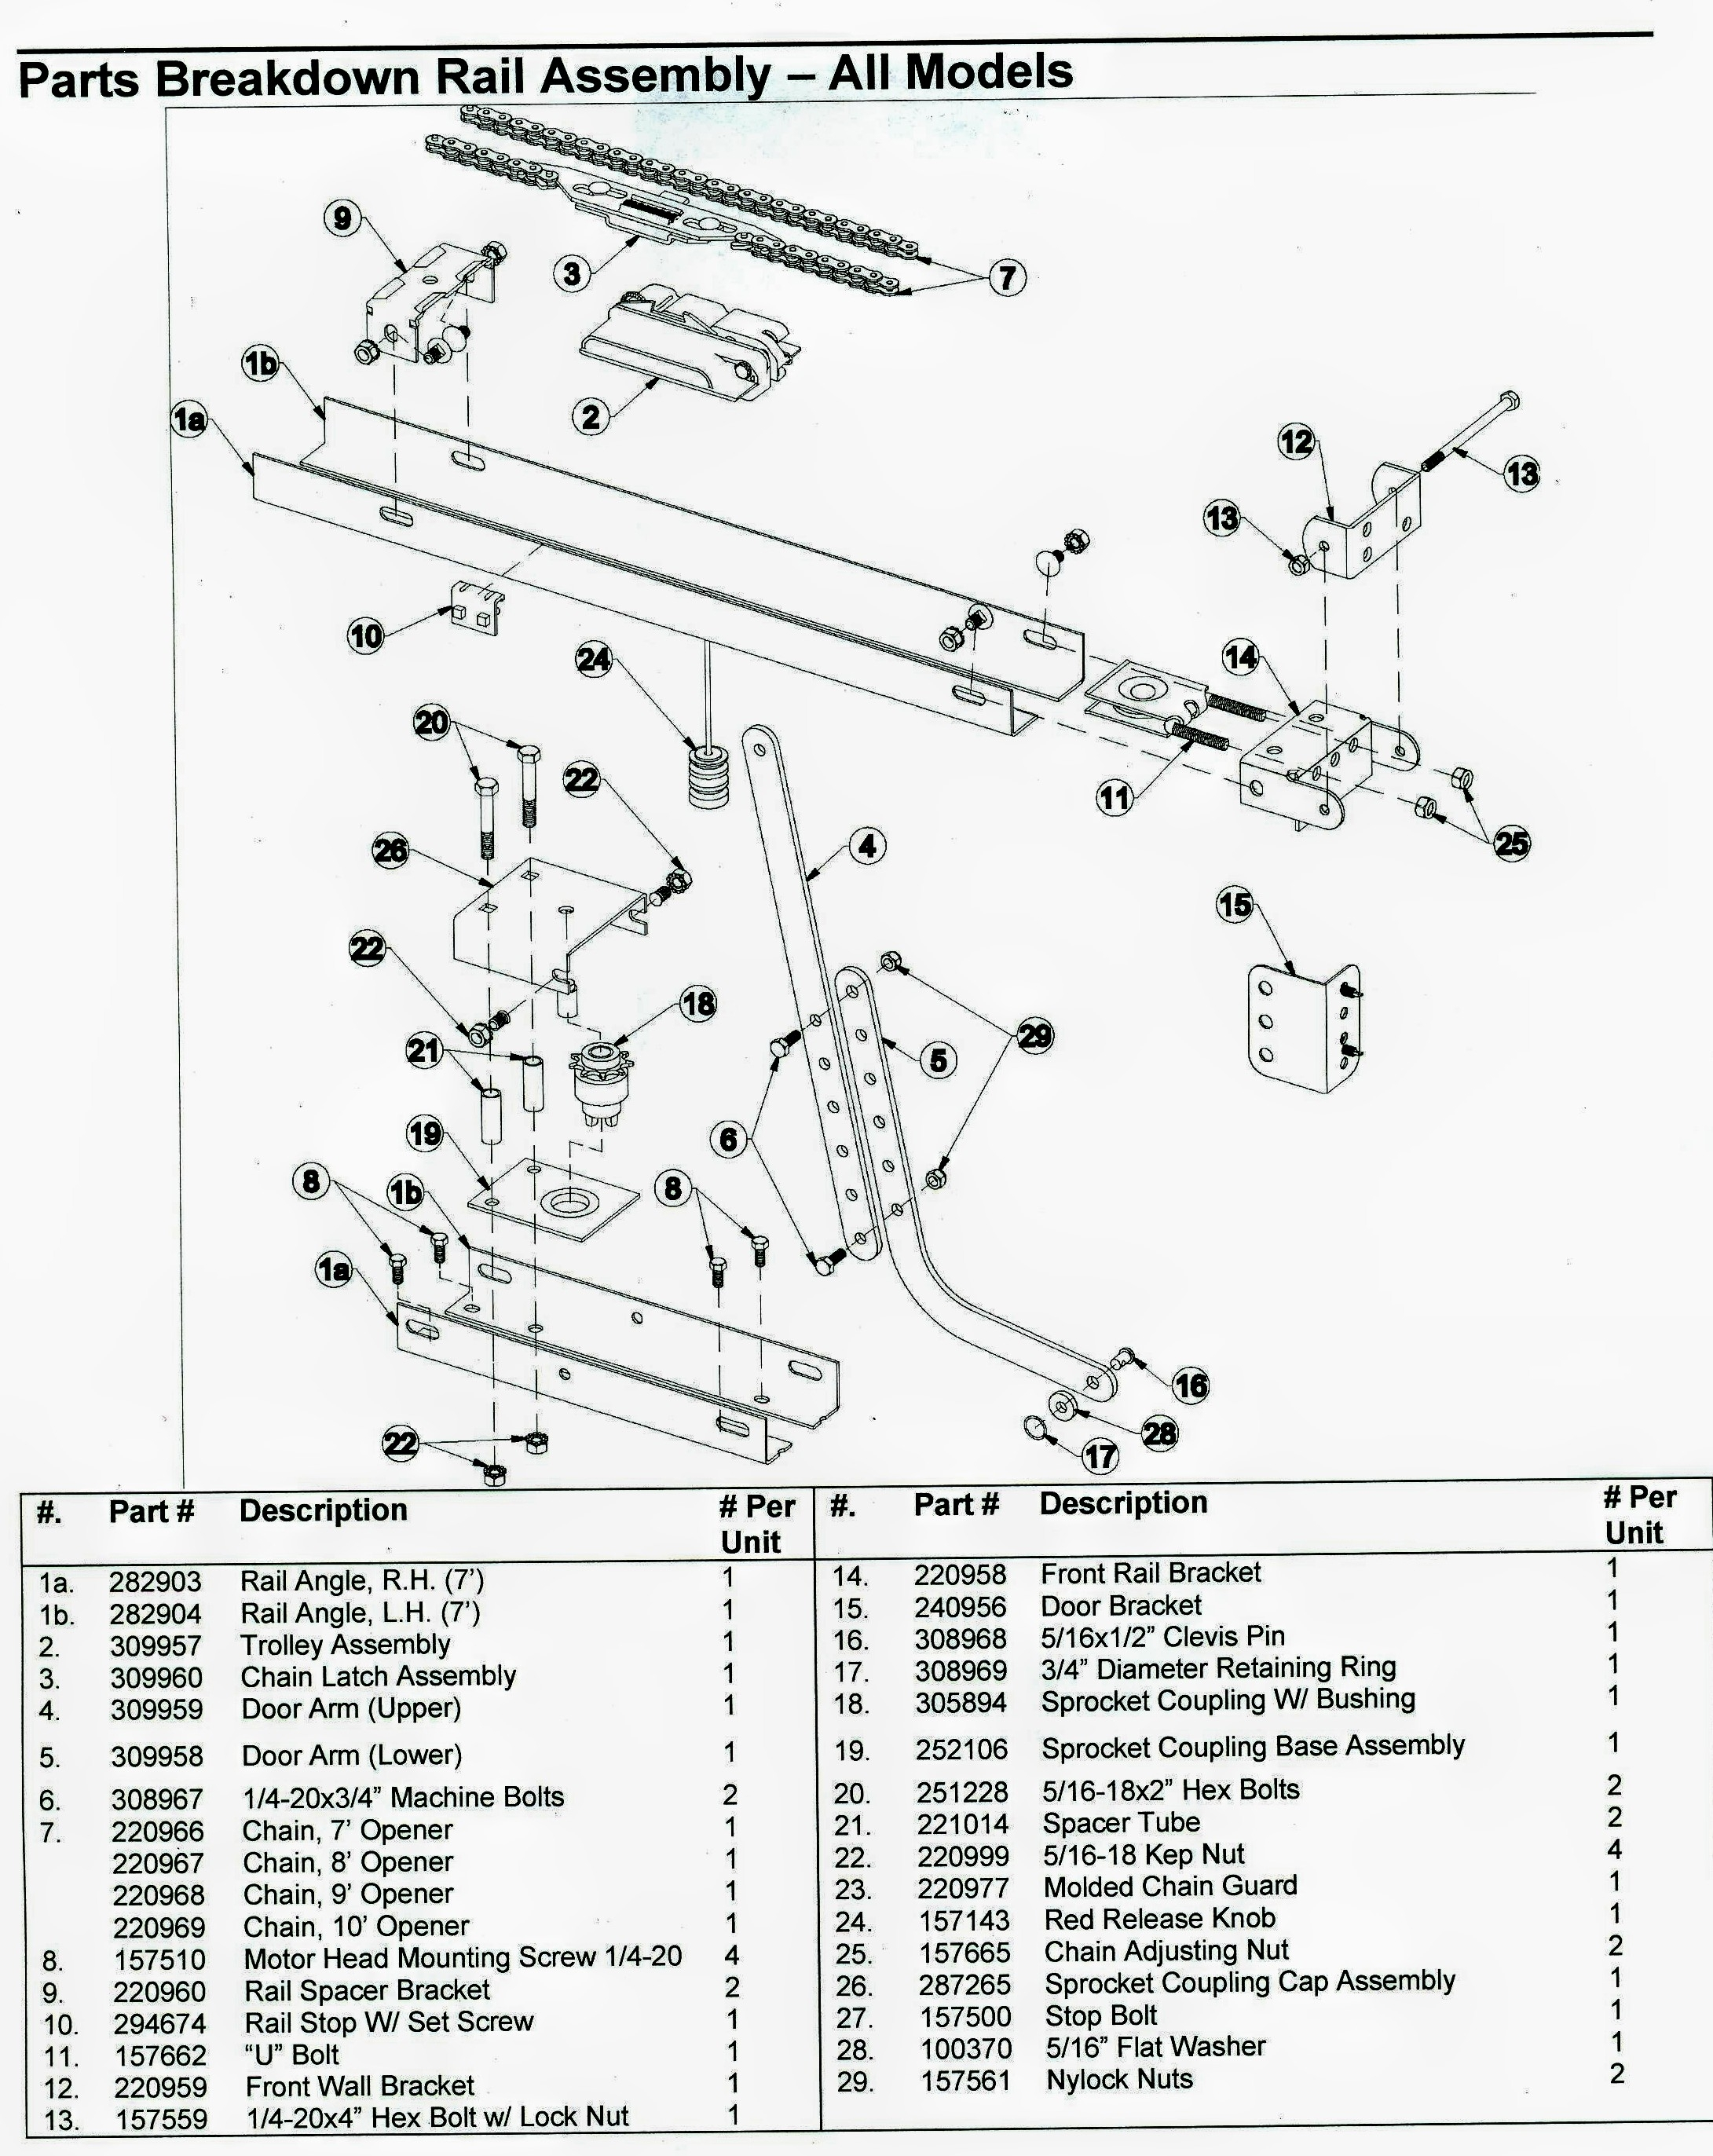 wiring diagram for liftmaster garage door opener on free throughout chamberlain garage door opener parts diagram wiring diagram for liftmaster garage door opener on free garage wiring diagram at panicattacktreatment.co